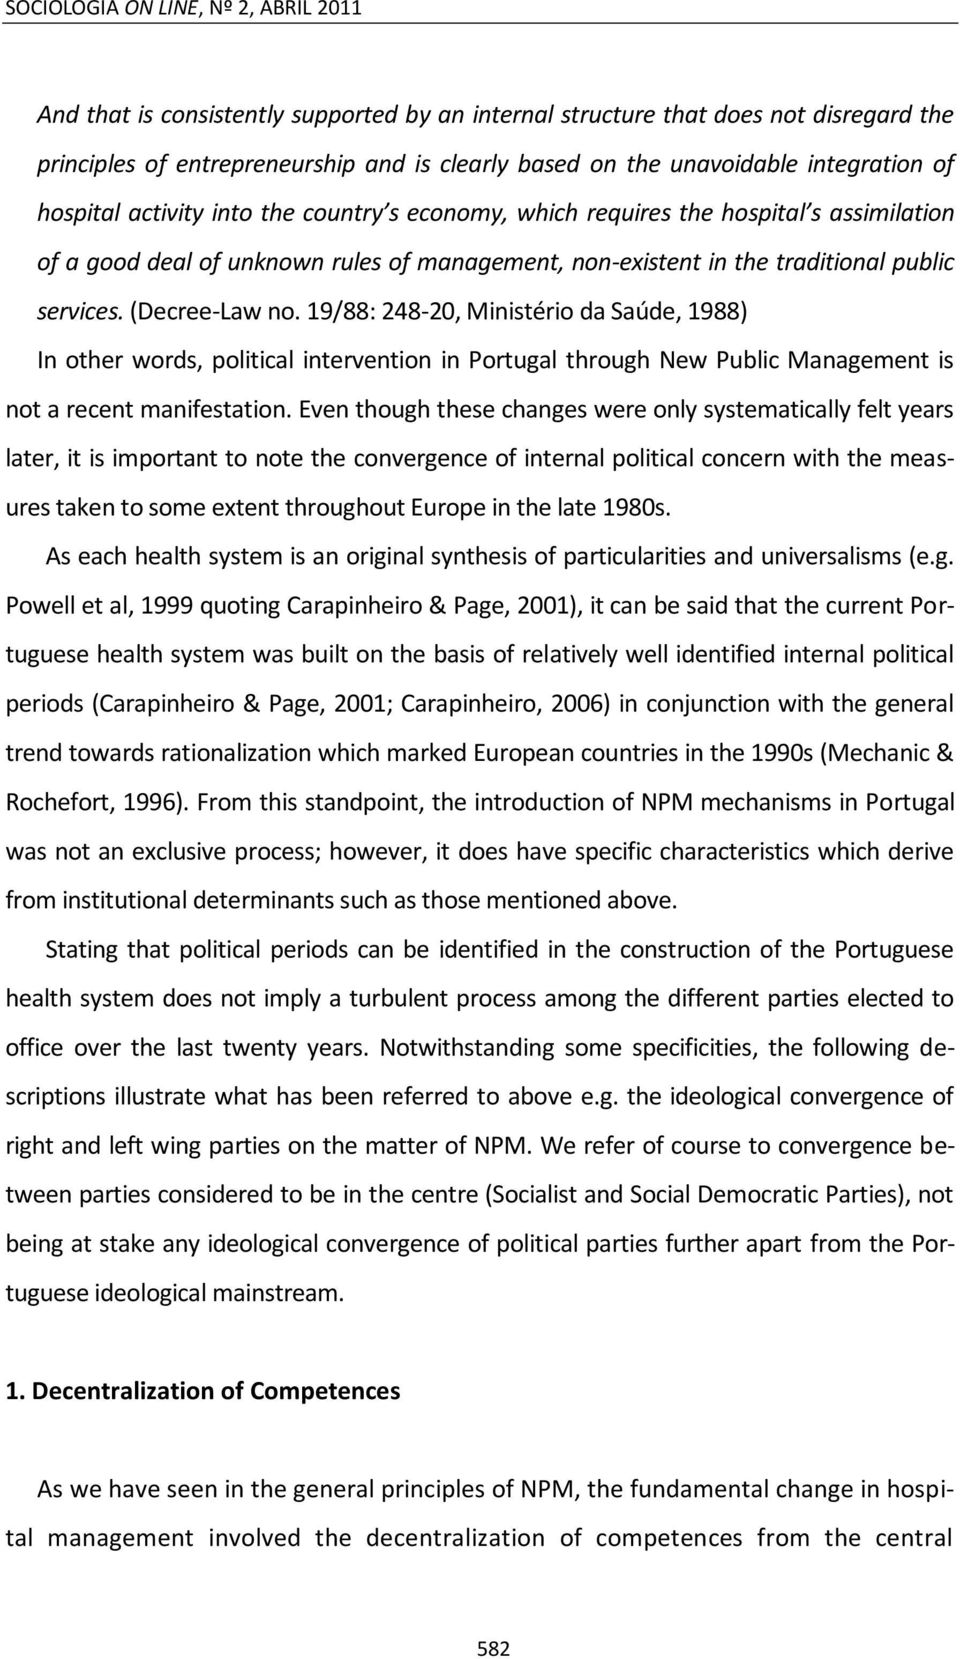 (Decree-Law no. 19/88: 248-20, Ministério da Saúde, 1988) In other words, political intervention in Portugal through New Public Management is not a recent manifestation.